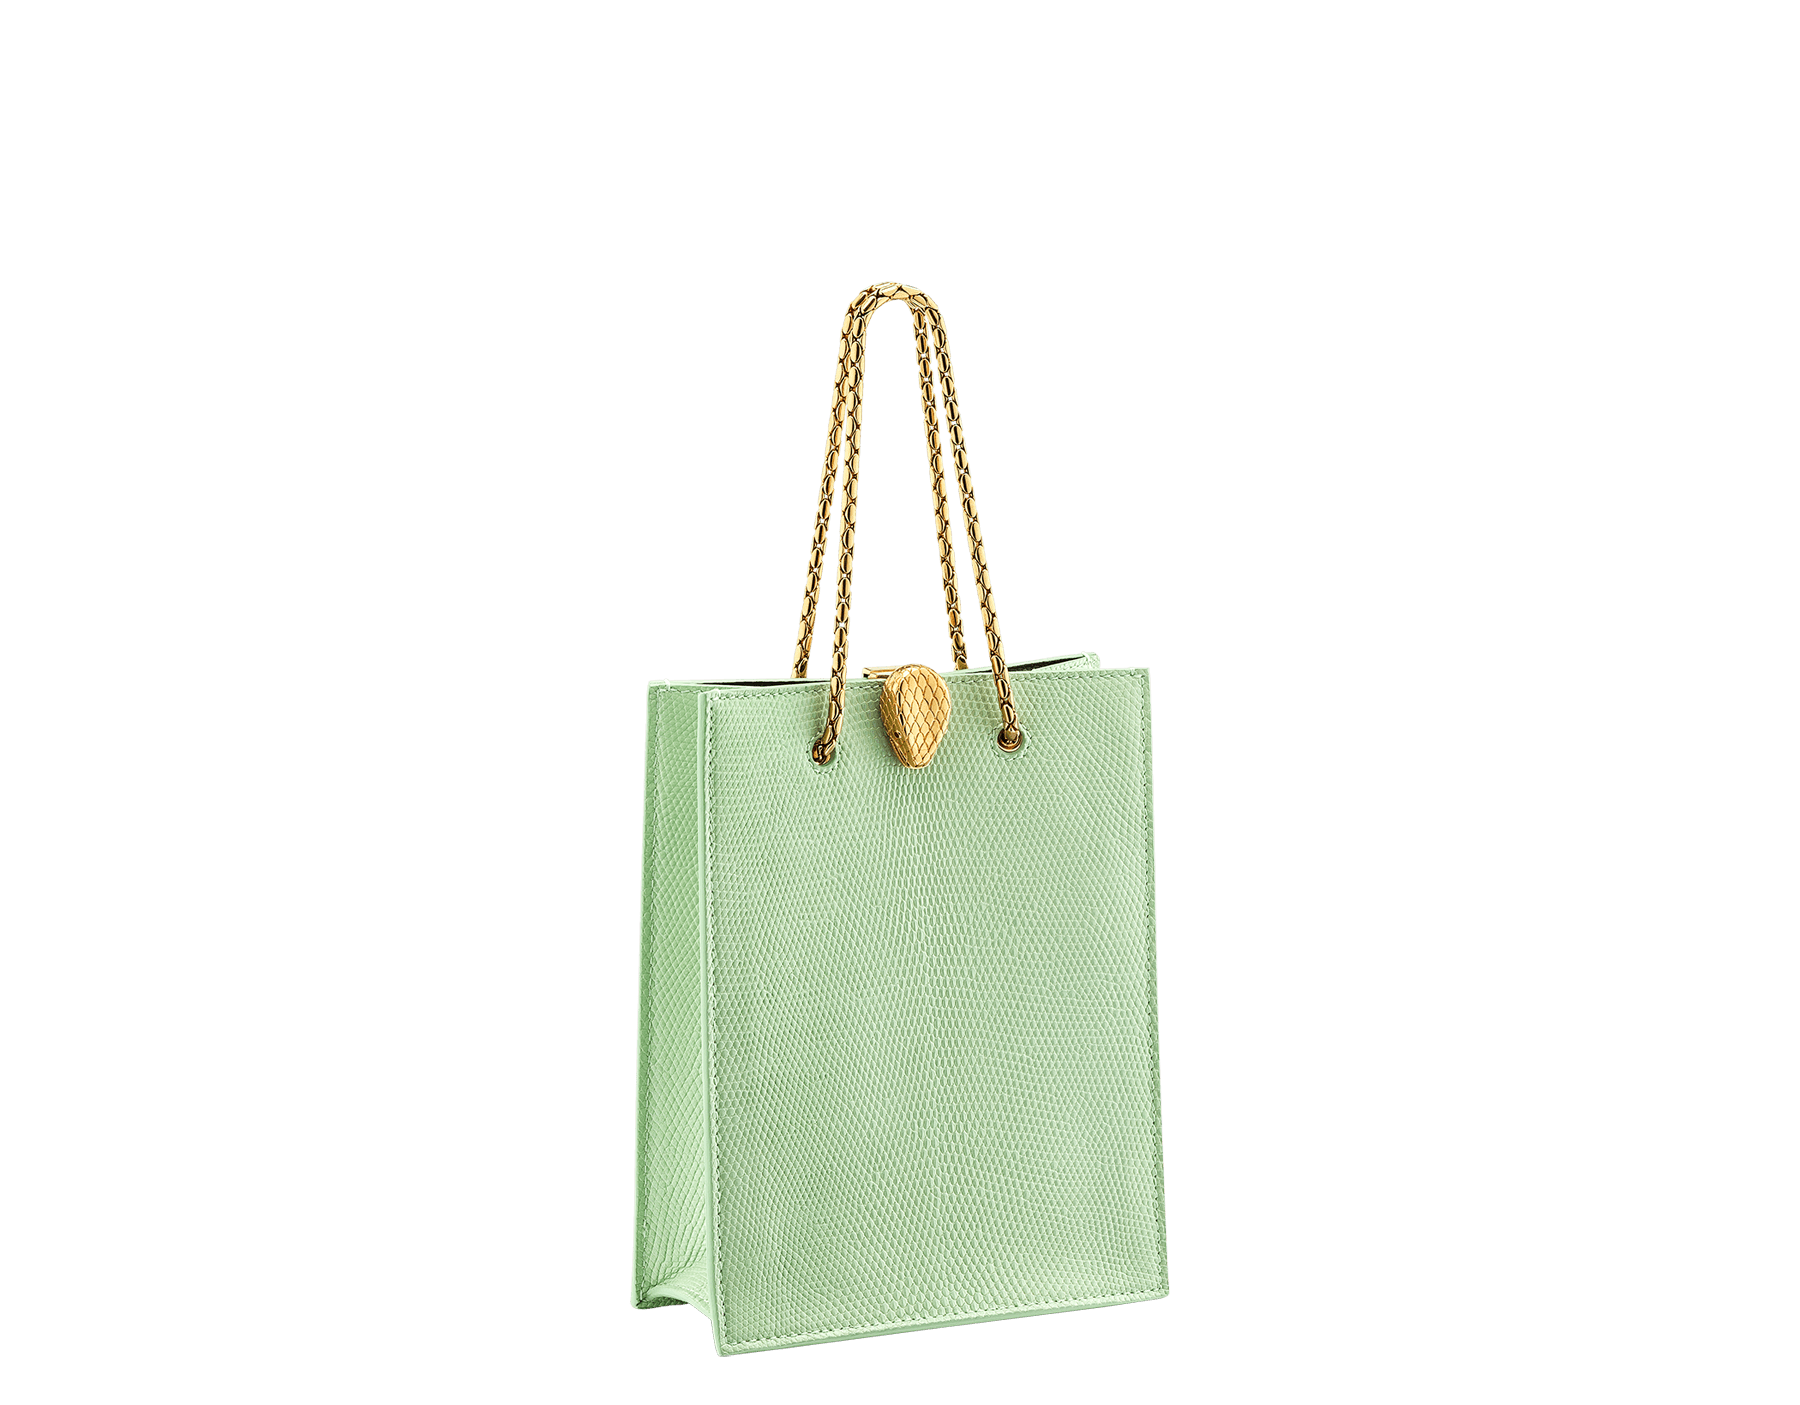 Alexander Wang x Bvlgari mini shopping tote bag in mint lizard skin and black calf leather. New Serpenti head closure in antique gold plated brass with tempting red enamel eyes. Limited edition. 288727 image 2